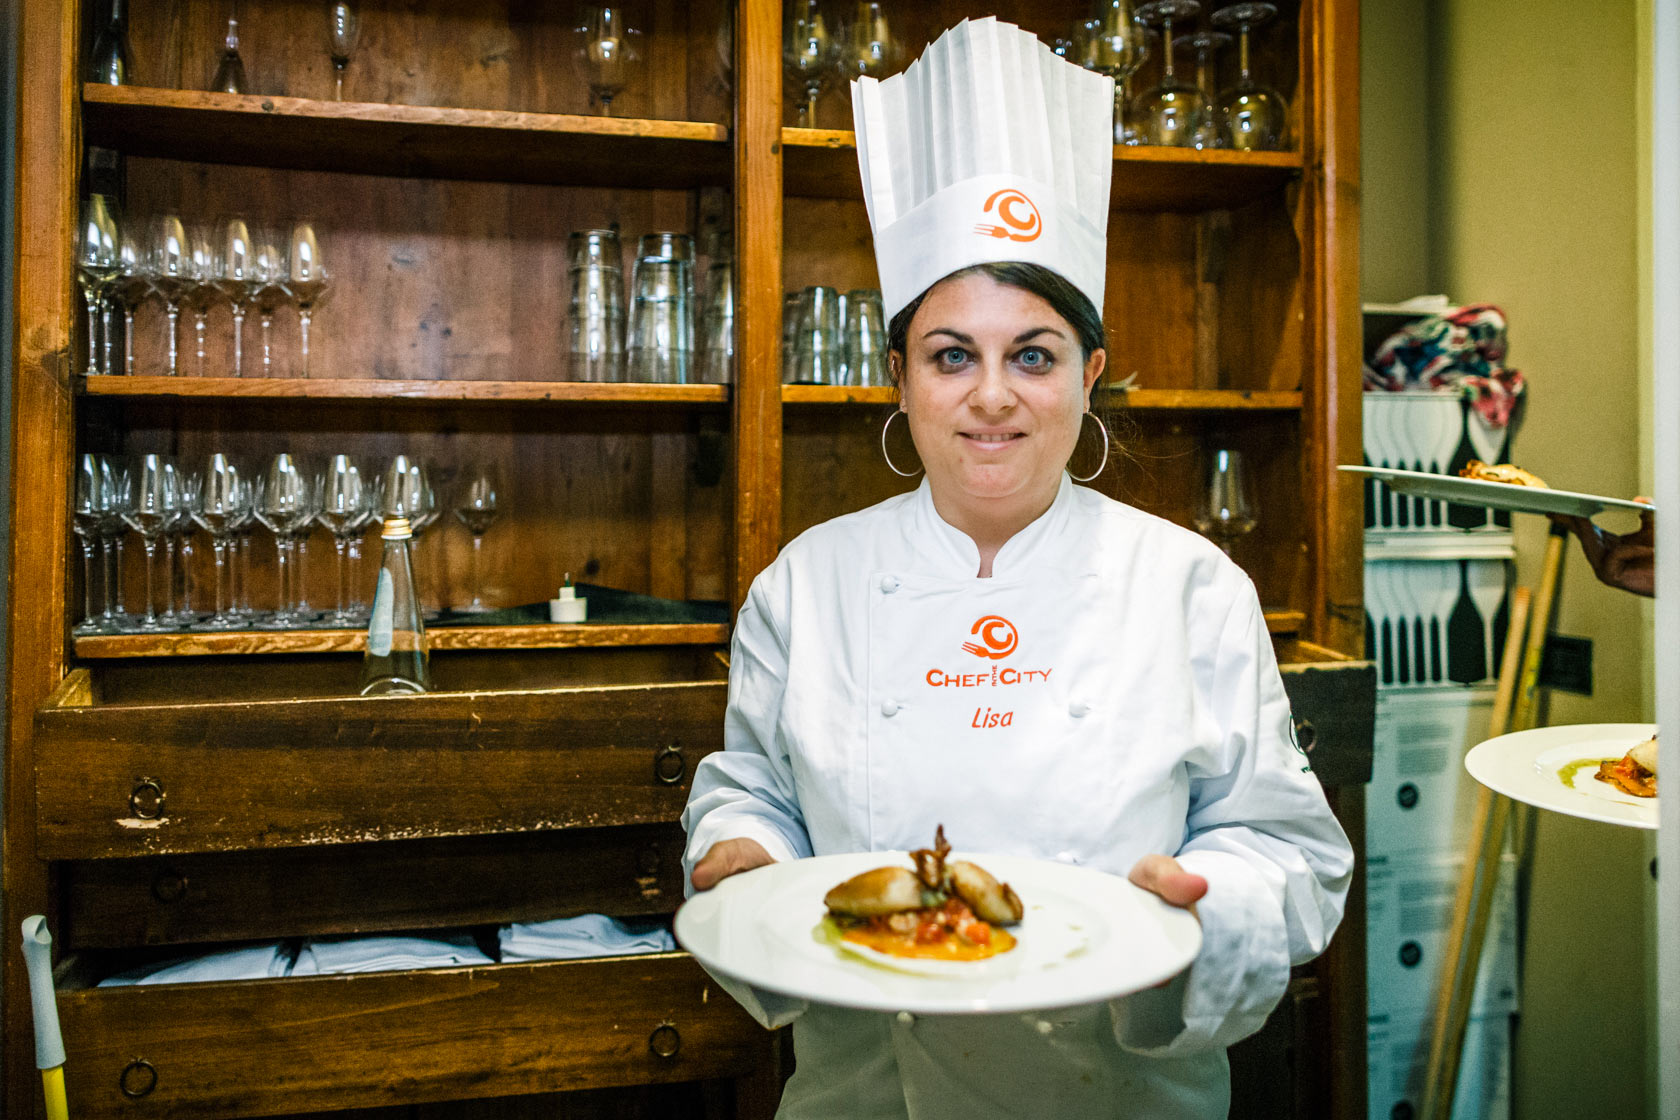 La pesarese Lisa Tomasucci è la prima semifinalista di Chef in the City